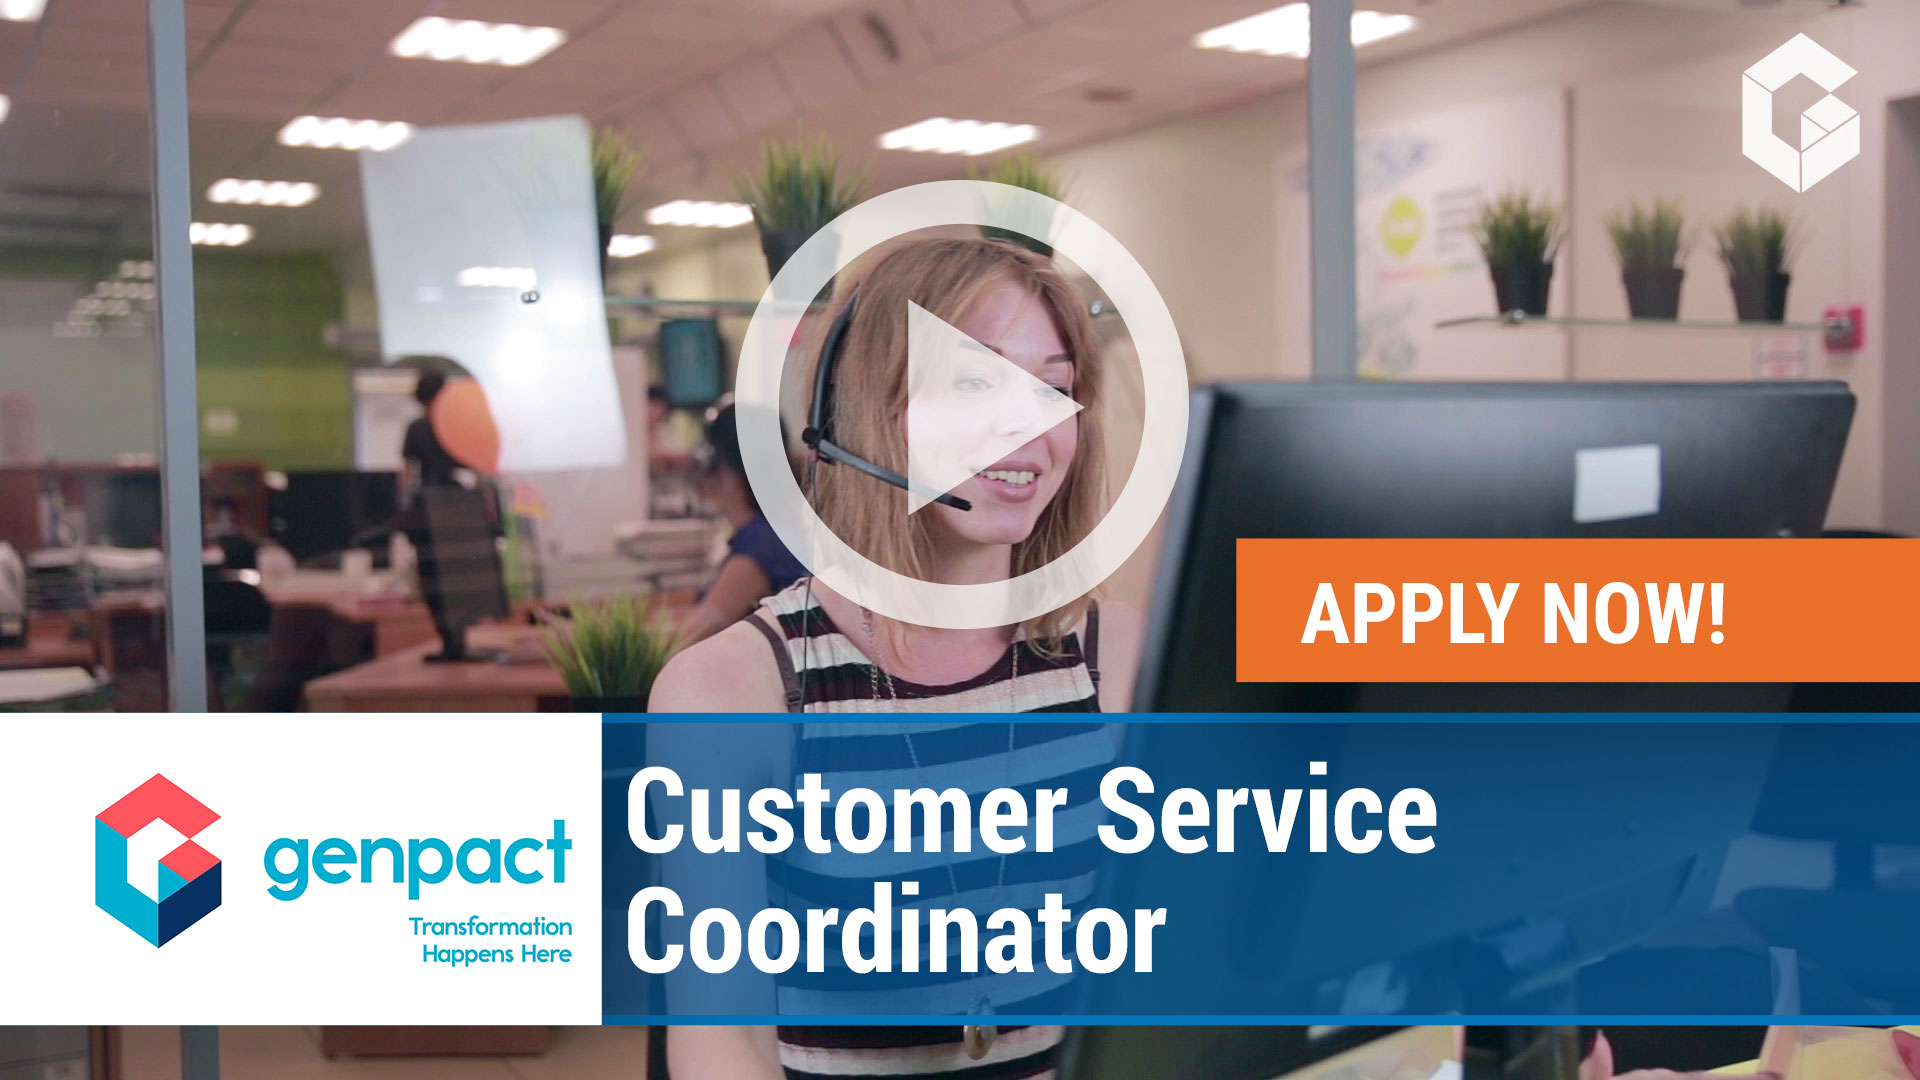 Watch our careers video for available job opening Customer Service Coordinator in Wilkes-Barre, Pennsylvania